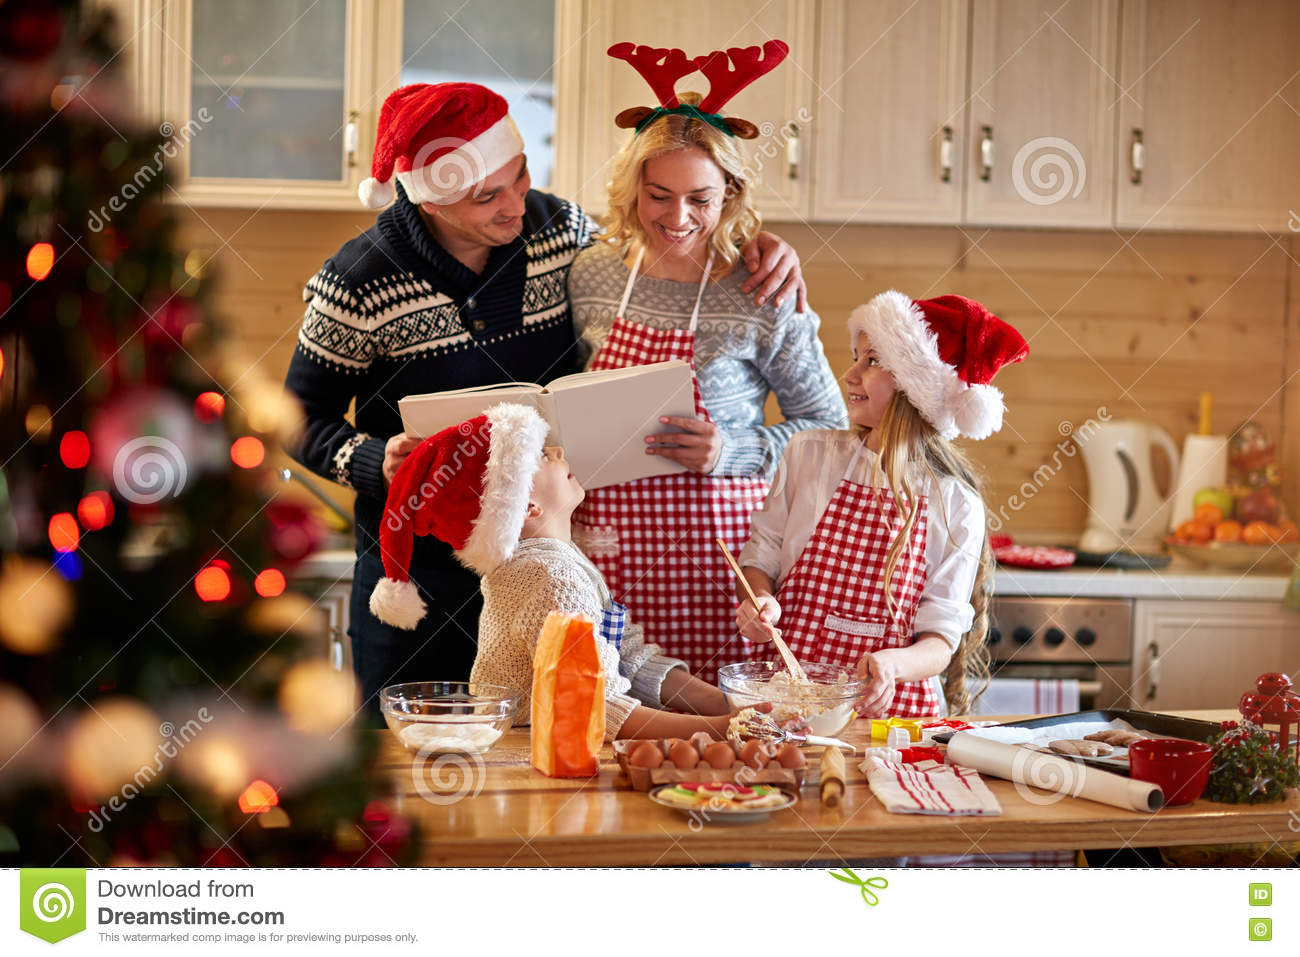 download family making christmas cookies at home stock image image of life happy - Making Christmas Cookies